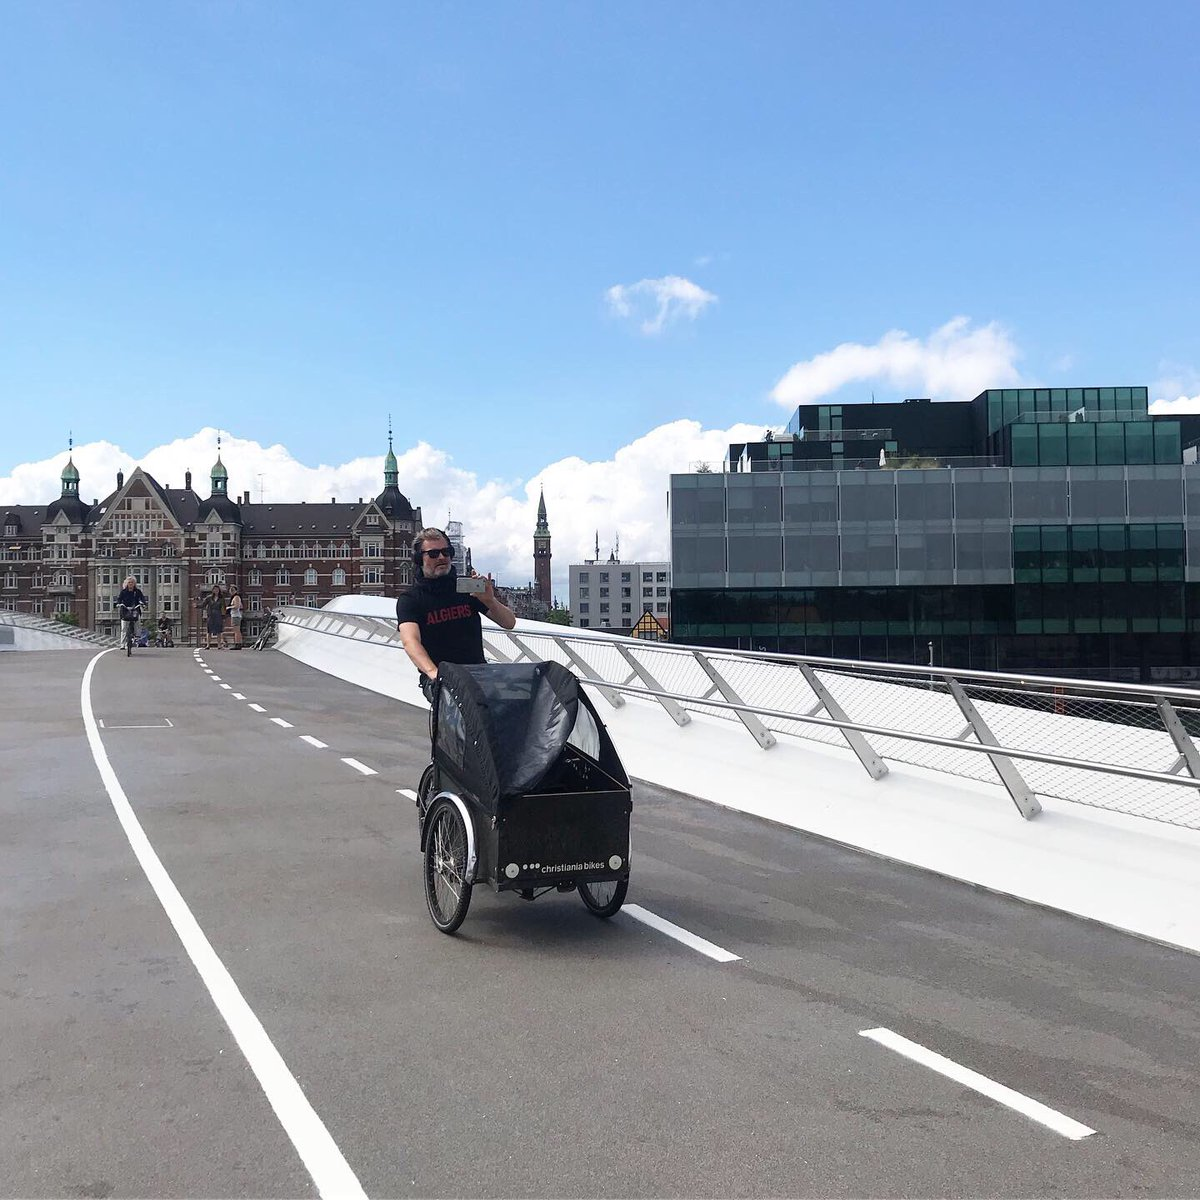 Today, yet another 🚲 and 🚶🏿 bridge opened in #Copenhagen! We feel very lucky to have our co-working space right next door.Huge thanks to @Realdaniadk and the City of Copenhagen for prioritizing clean transportation 🙏@BLOX_KBH , @DACdotDK, @designcentret, @koebenhavner